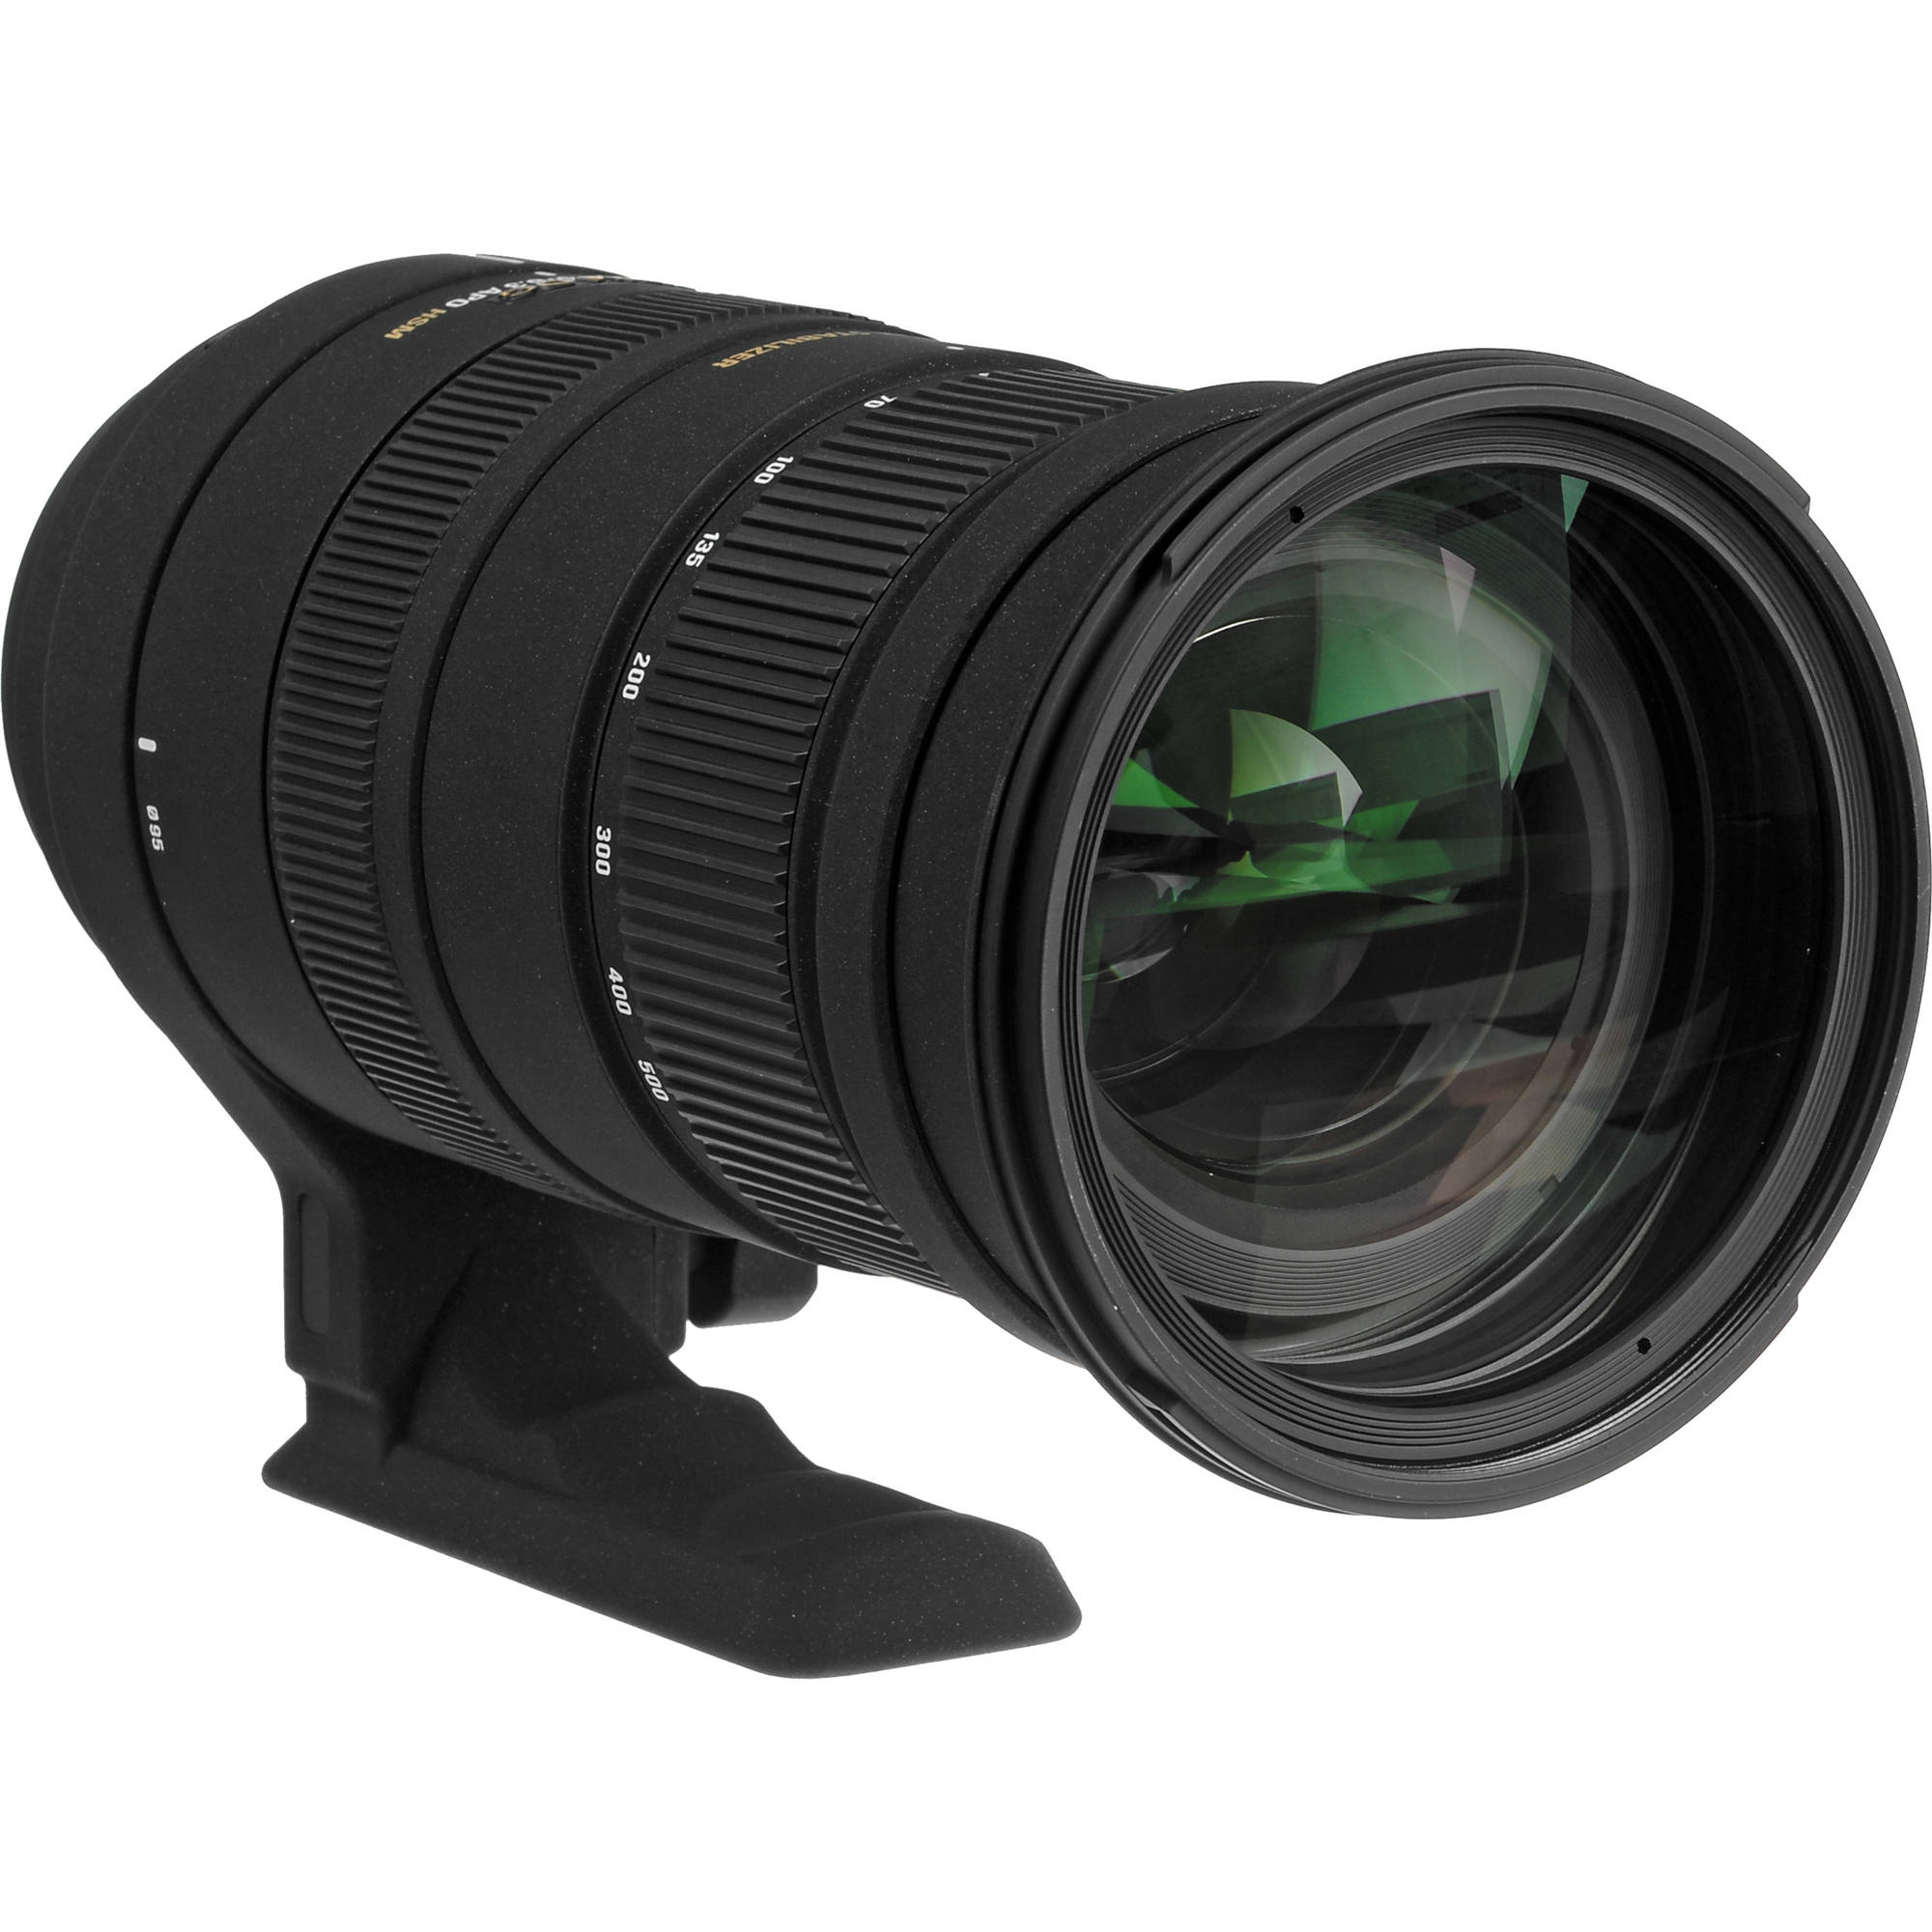 Image of Sigma APO 50-500mm f/4.5-6.3 DG OS HSM Lens For Canon Mount